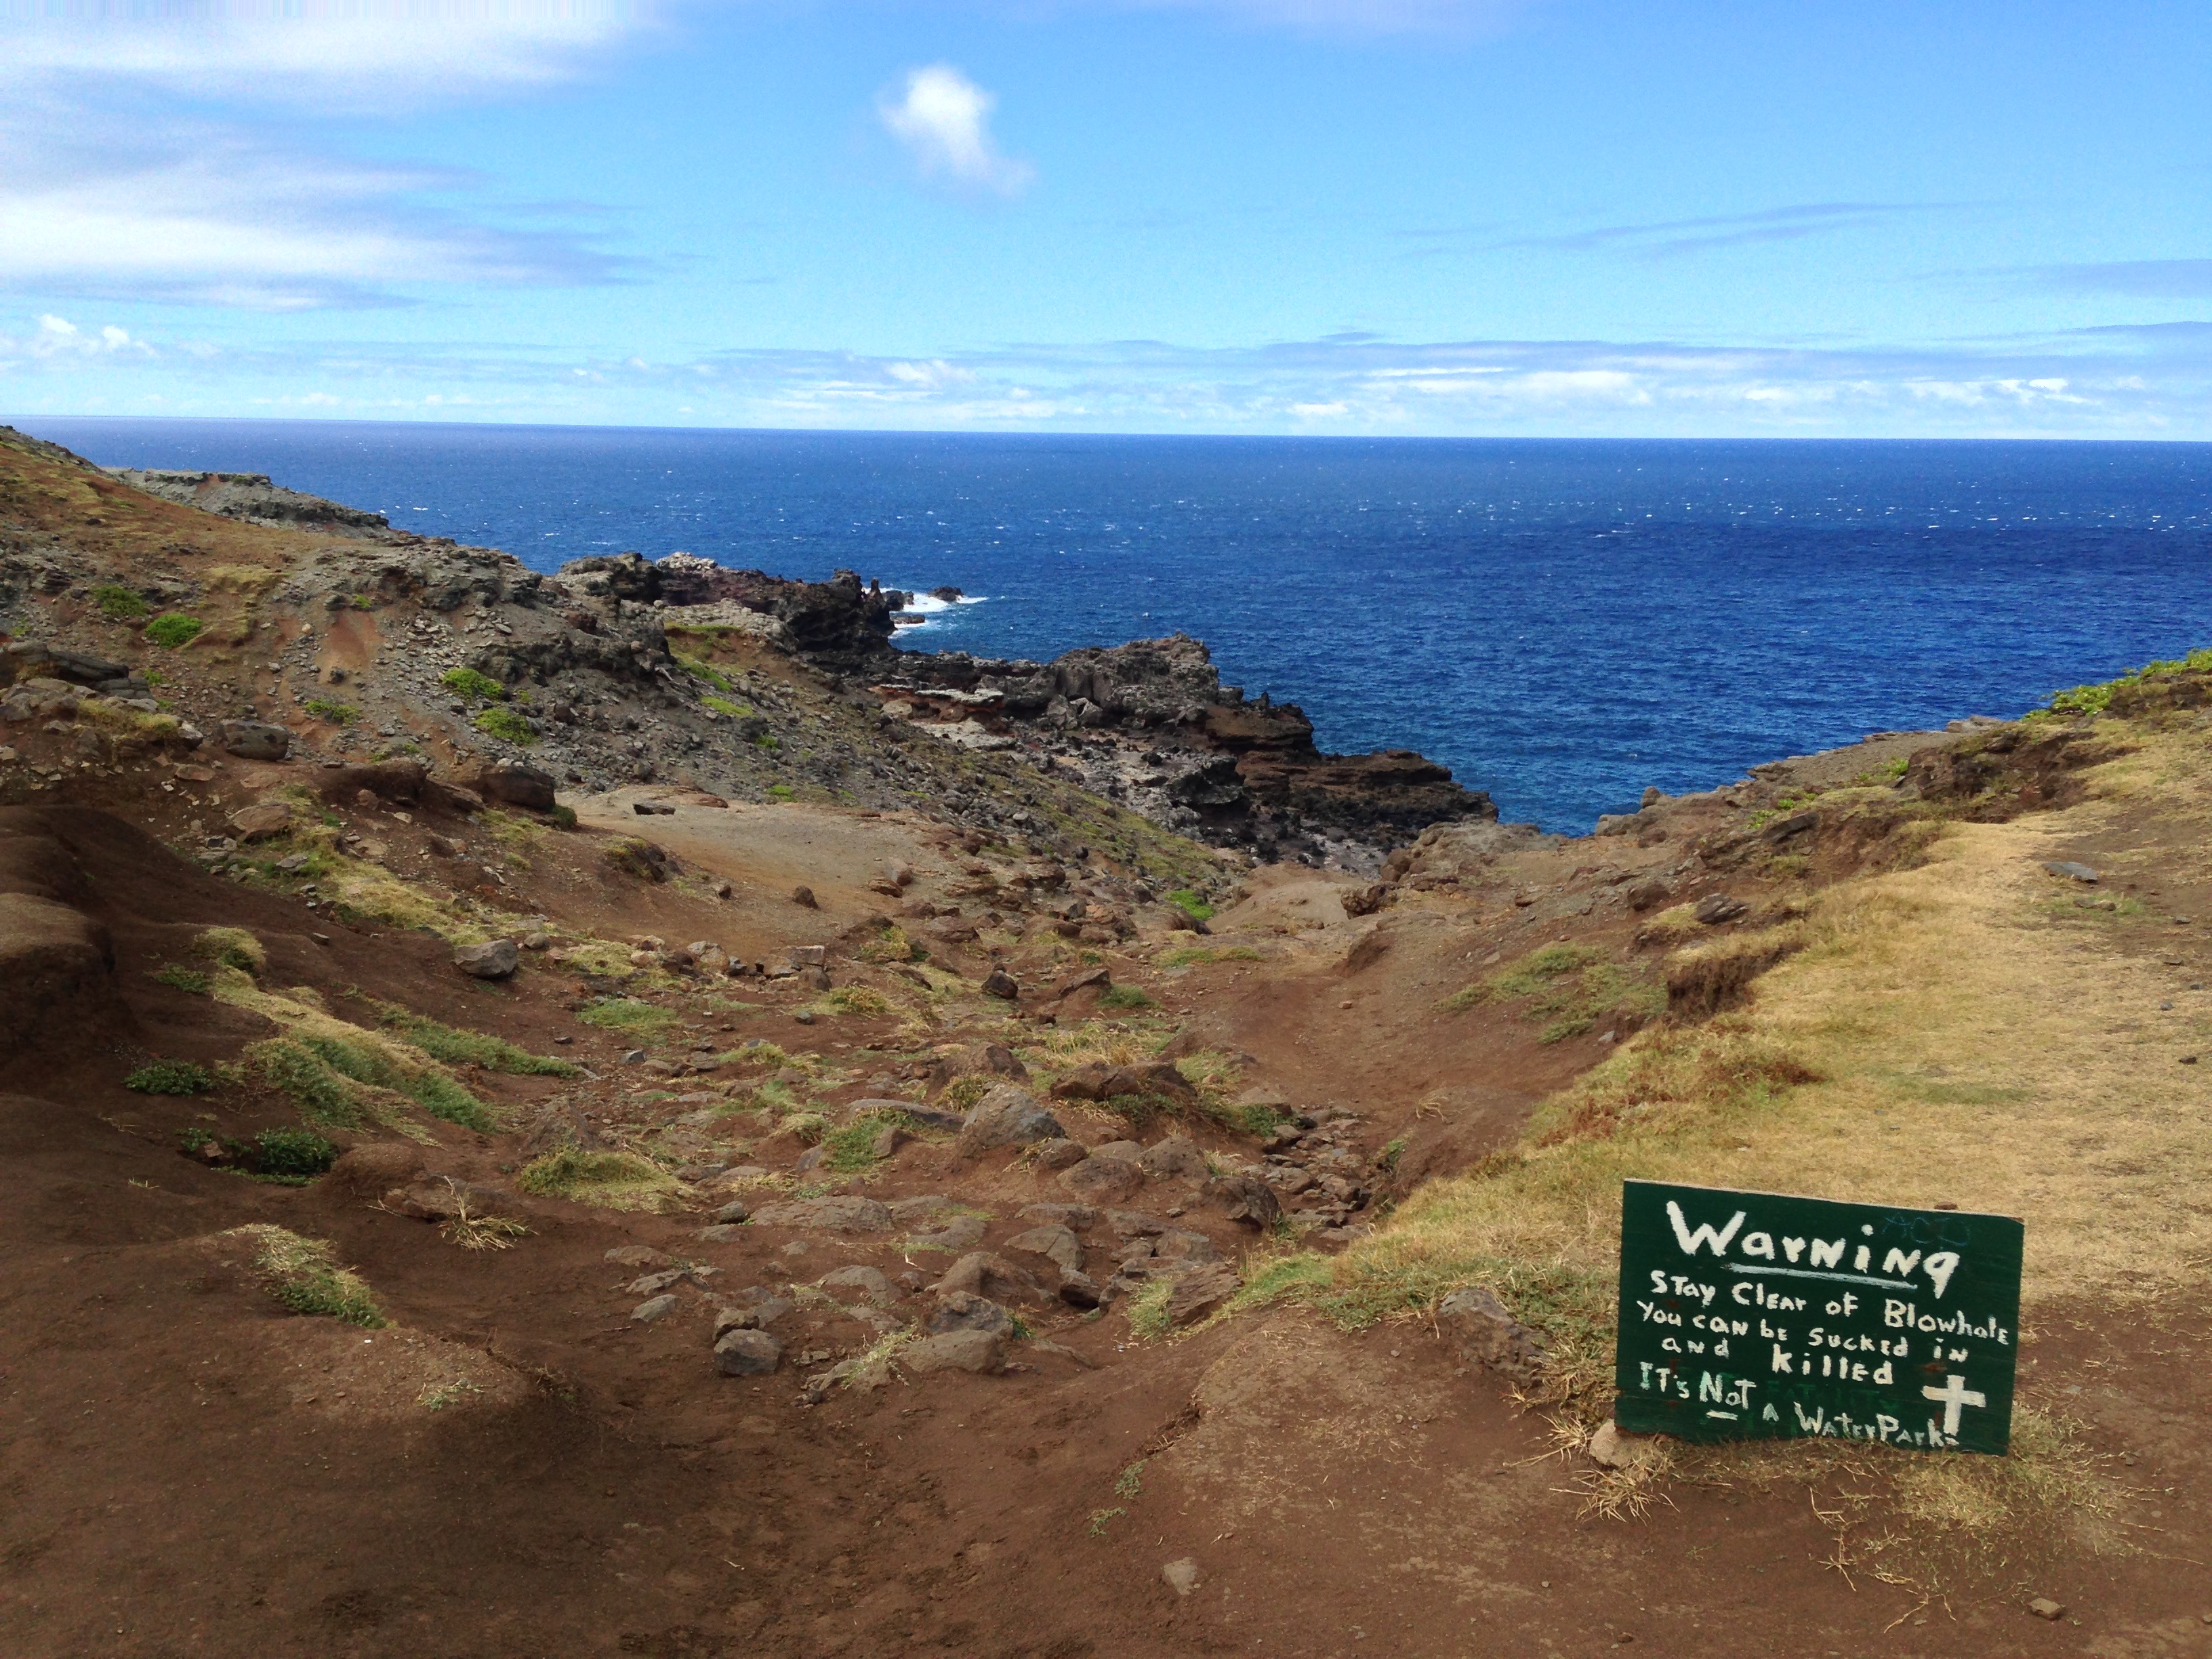 #FridayFive: Places in Maui